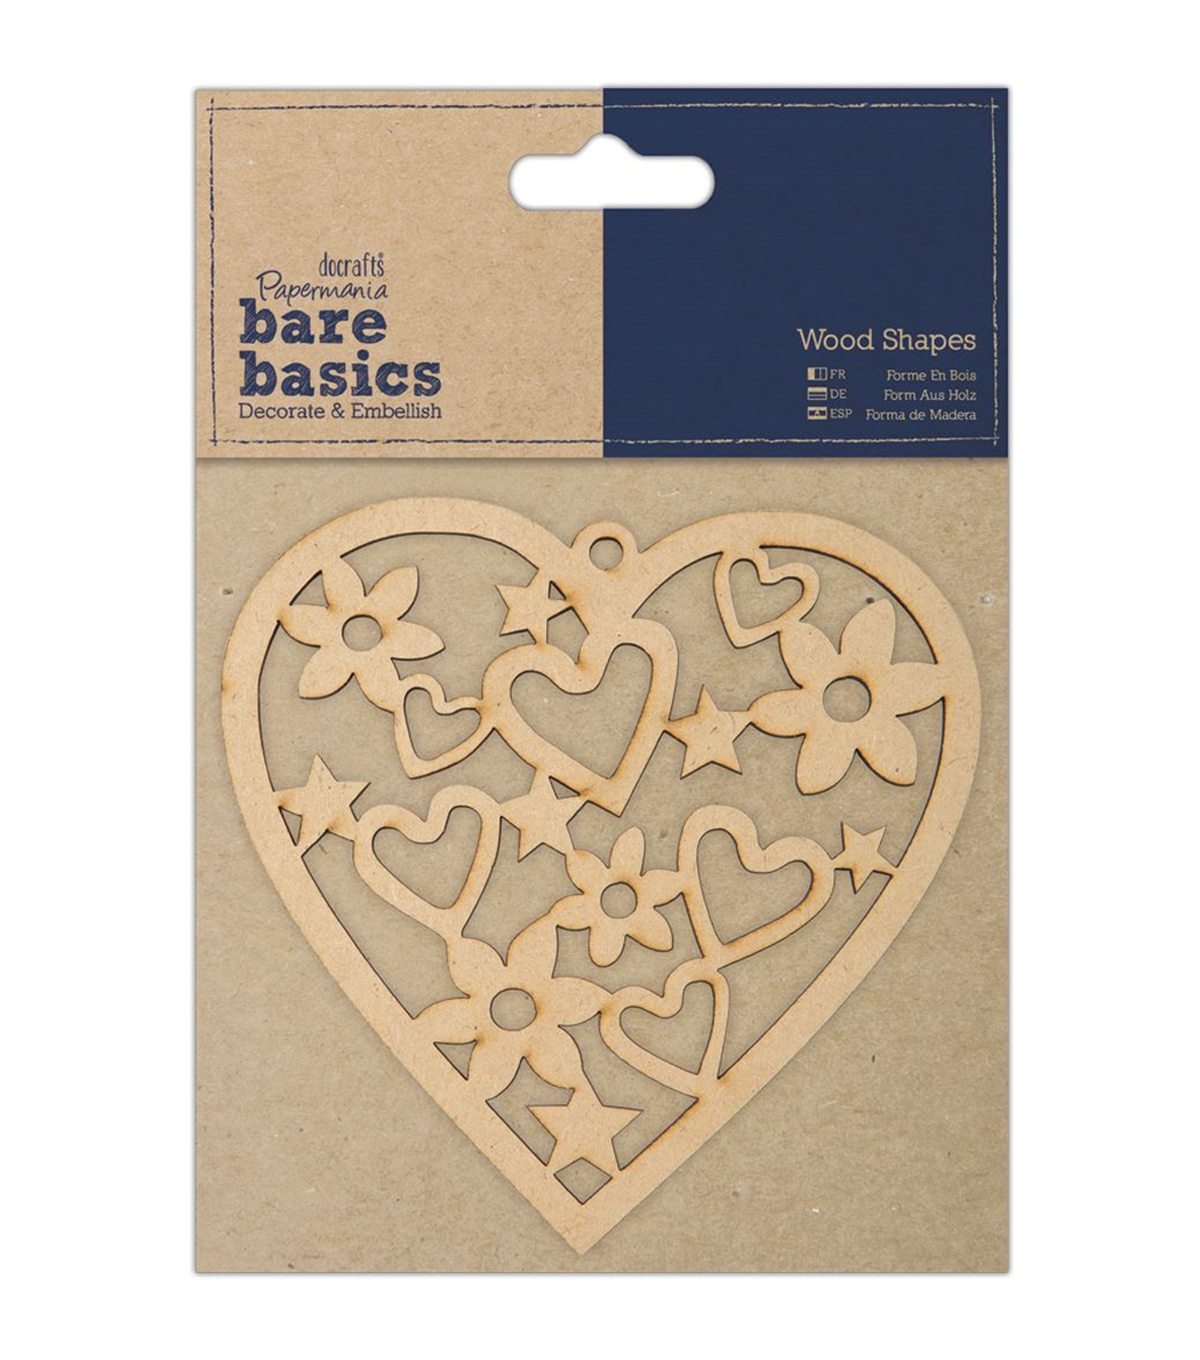 Docrafts Papermania Bare Basics Heart Wooden Shape